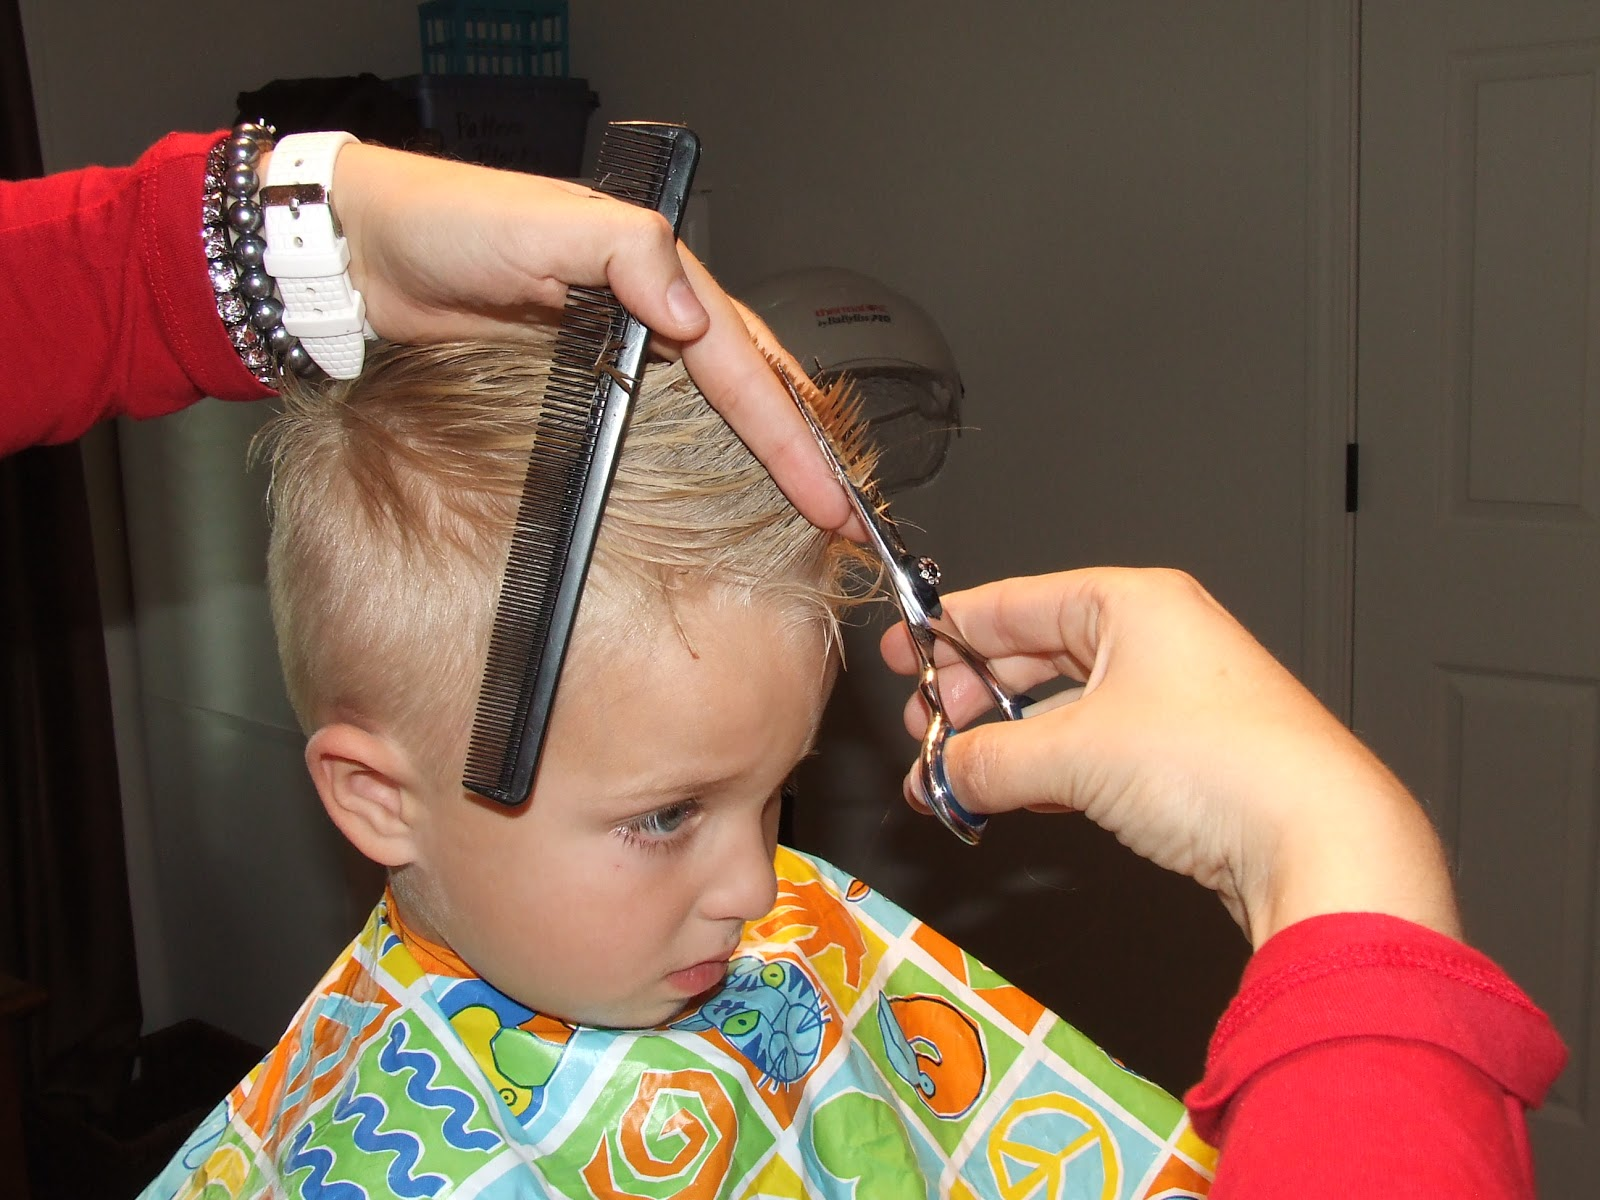 Simply Everthing I Love How To Cut Boys Hair The Professional Way - How to cut boys hair